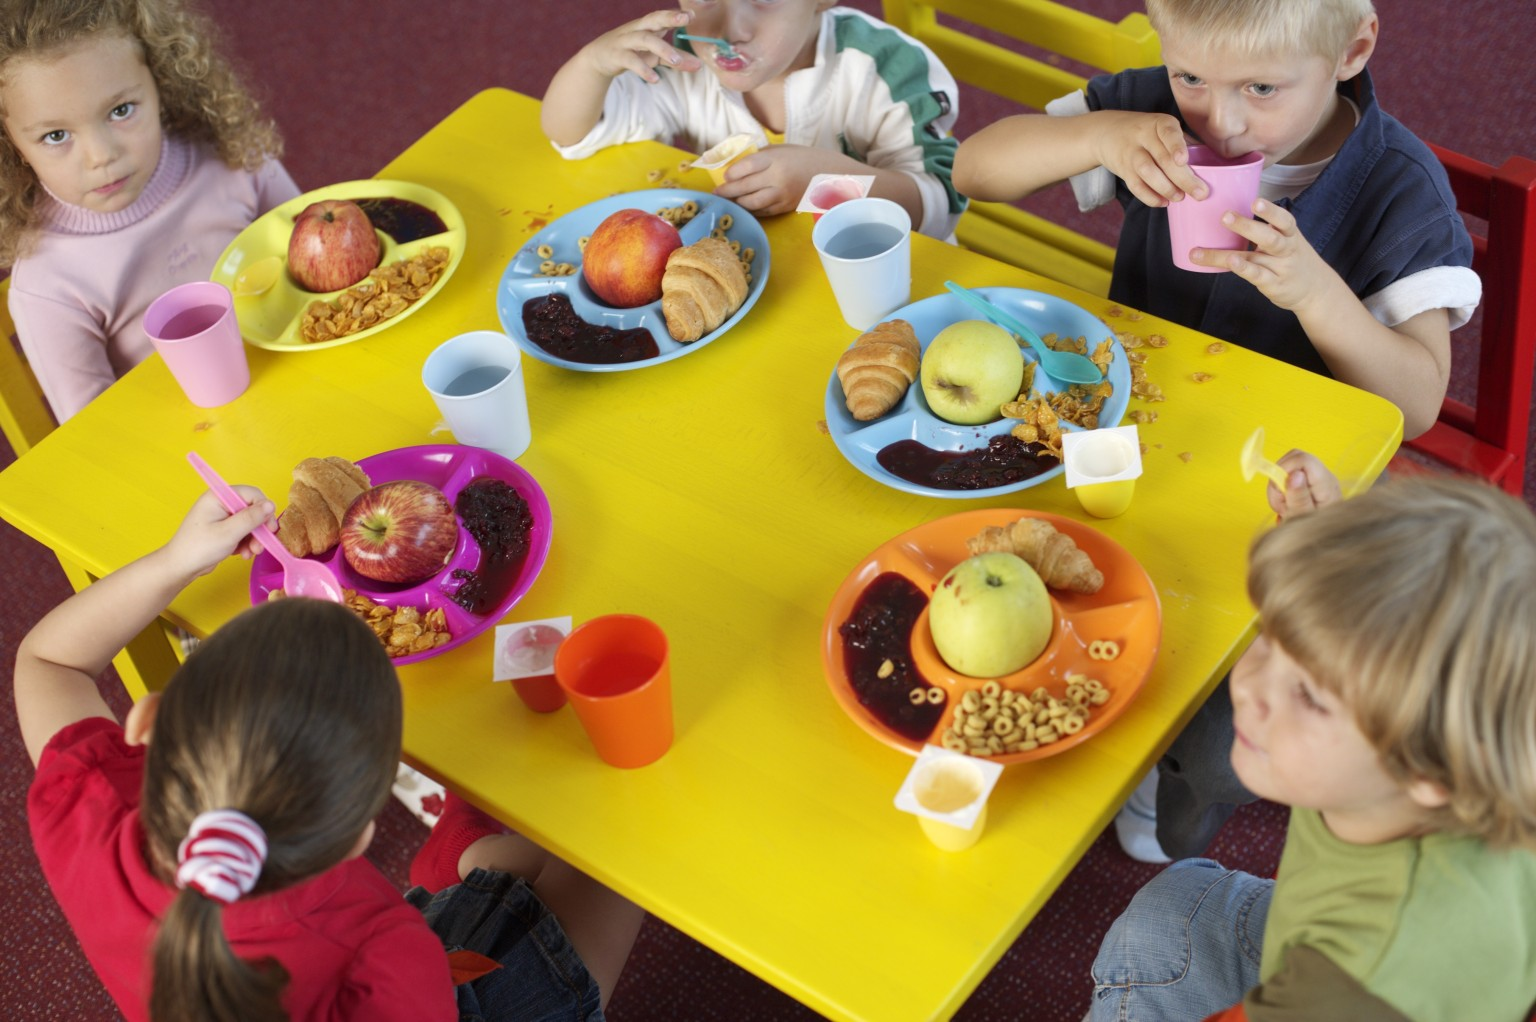 Why You Should Support School Breakfast Even If Your Kid Eats At Home